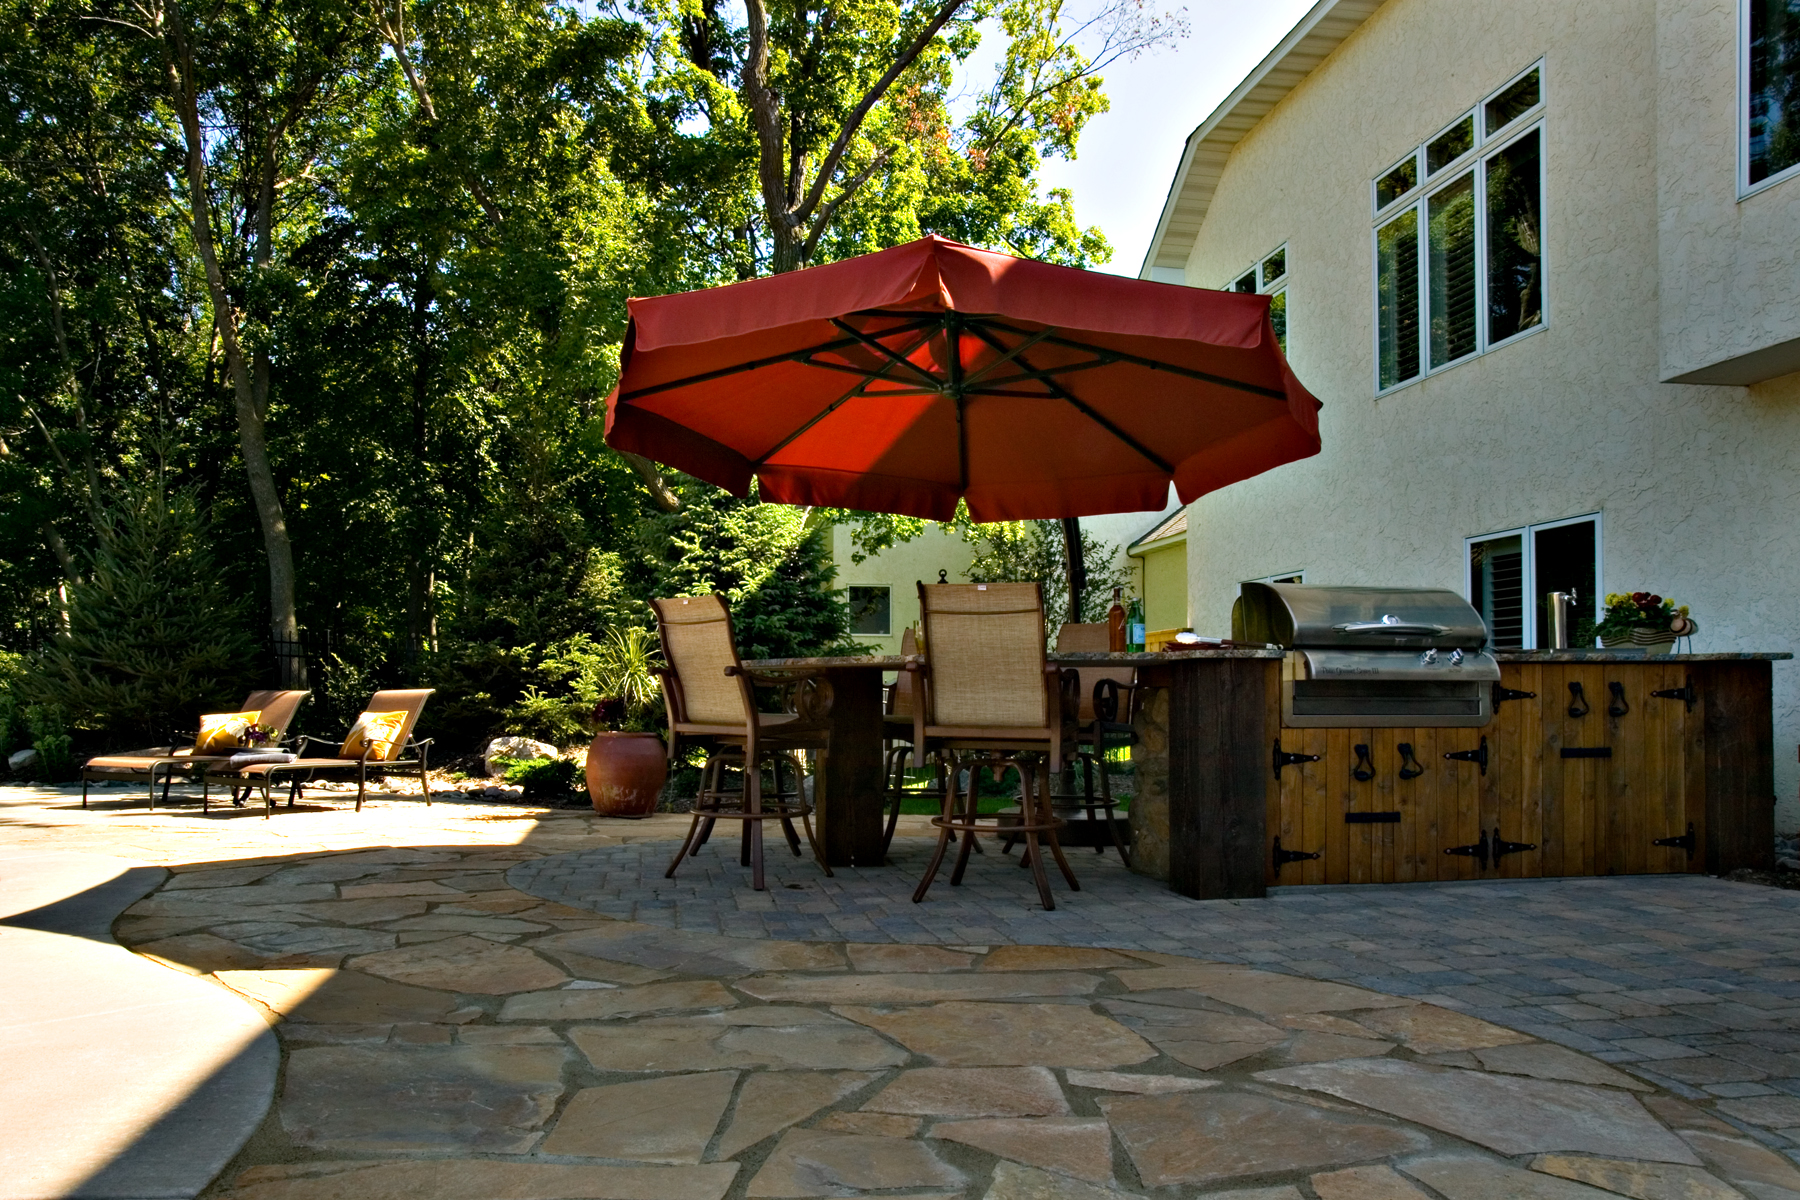 patio-umbrella-poolside.jpg